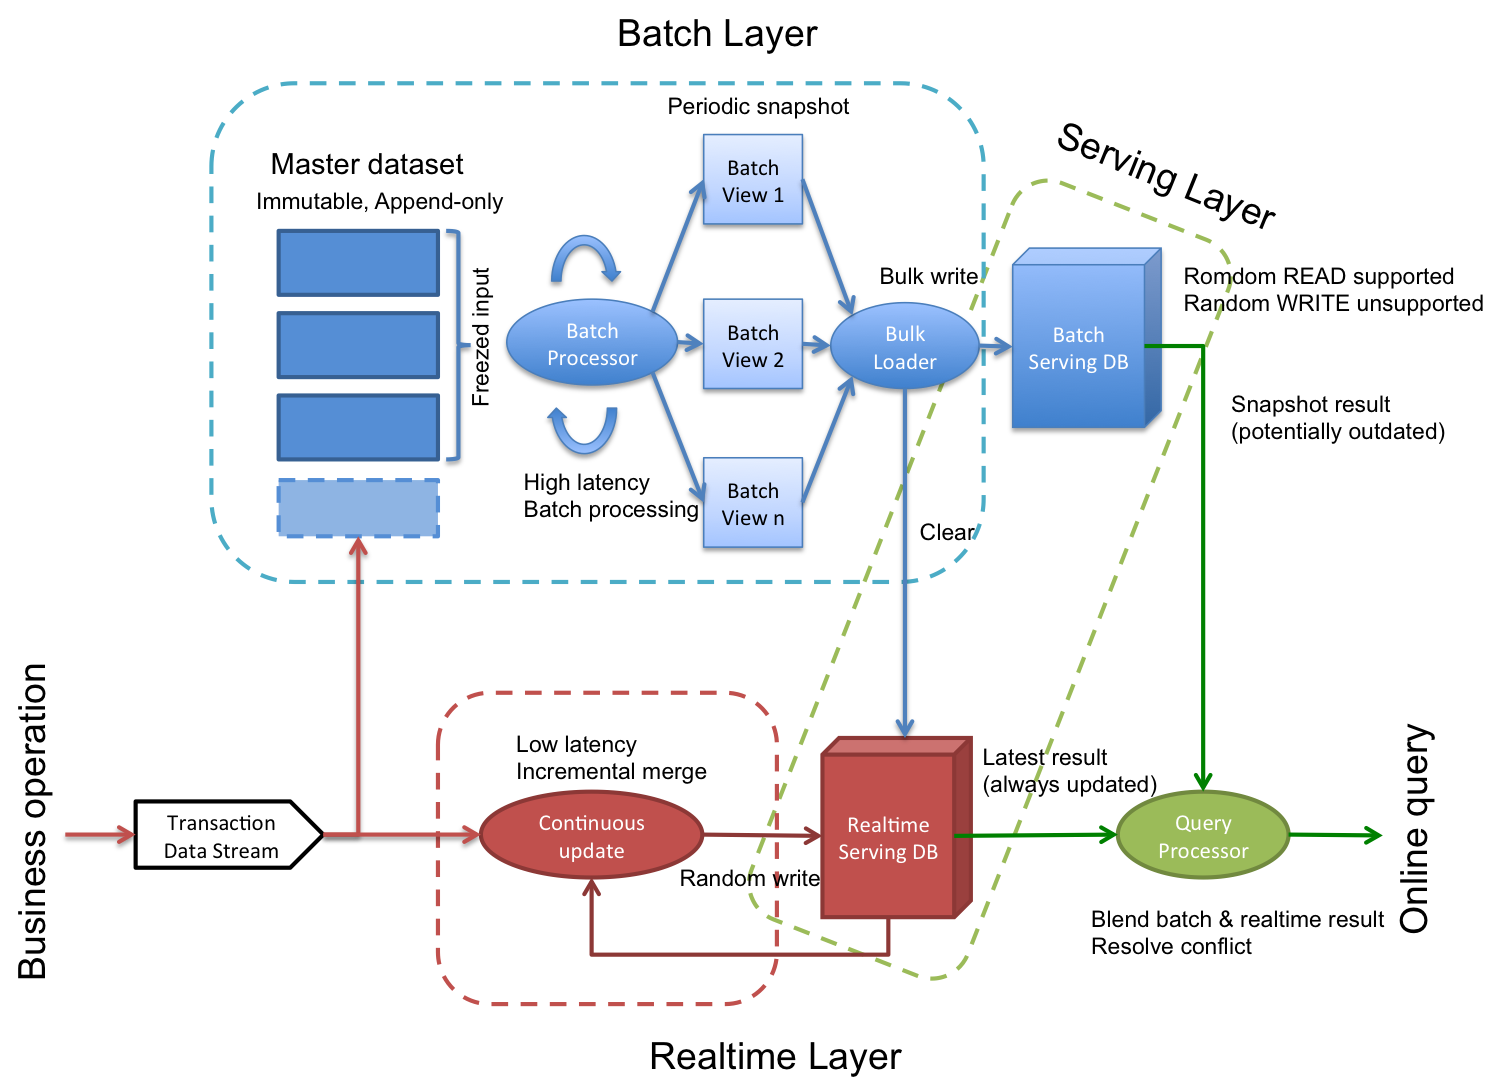 here is an overall architecture diagram for lambda